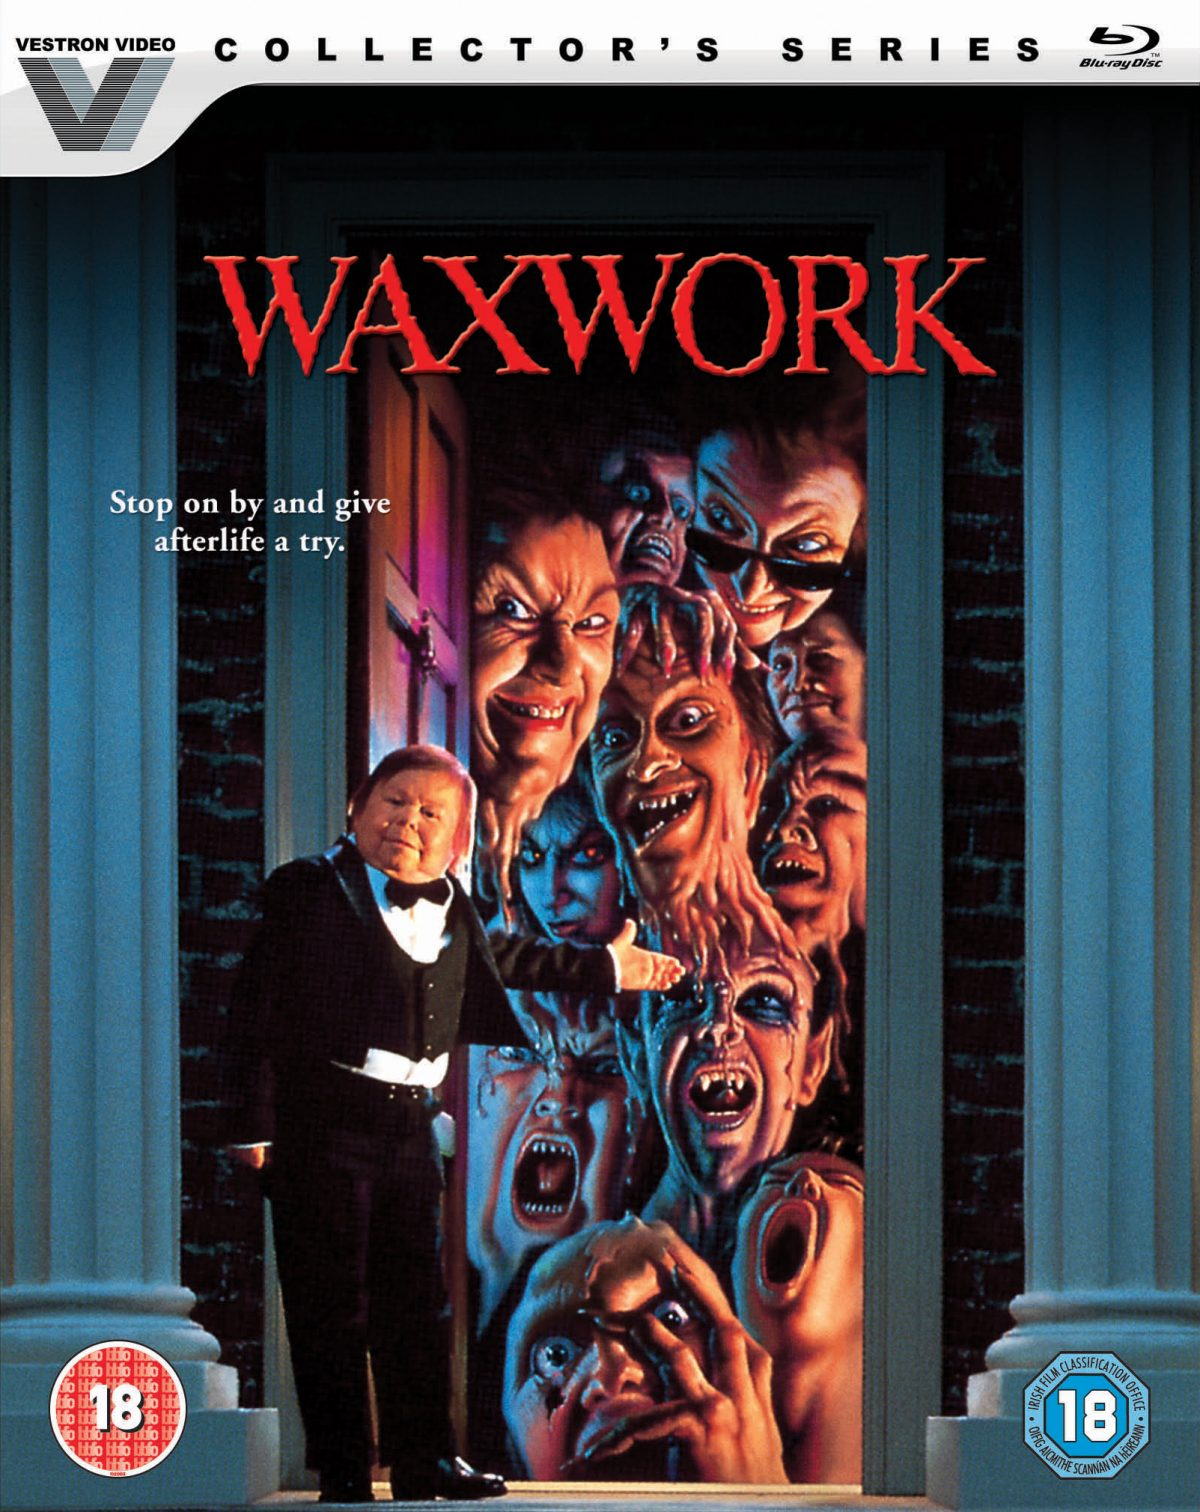 Waxwork is heading on to Blu-ray for the first time thanks to Lionsgate UK later this month, we check out the release and its special features.